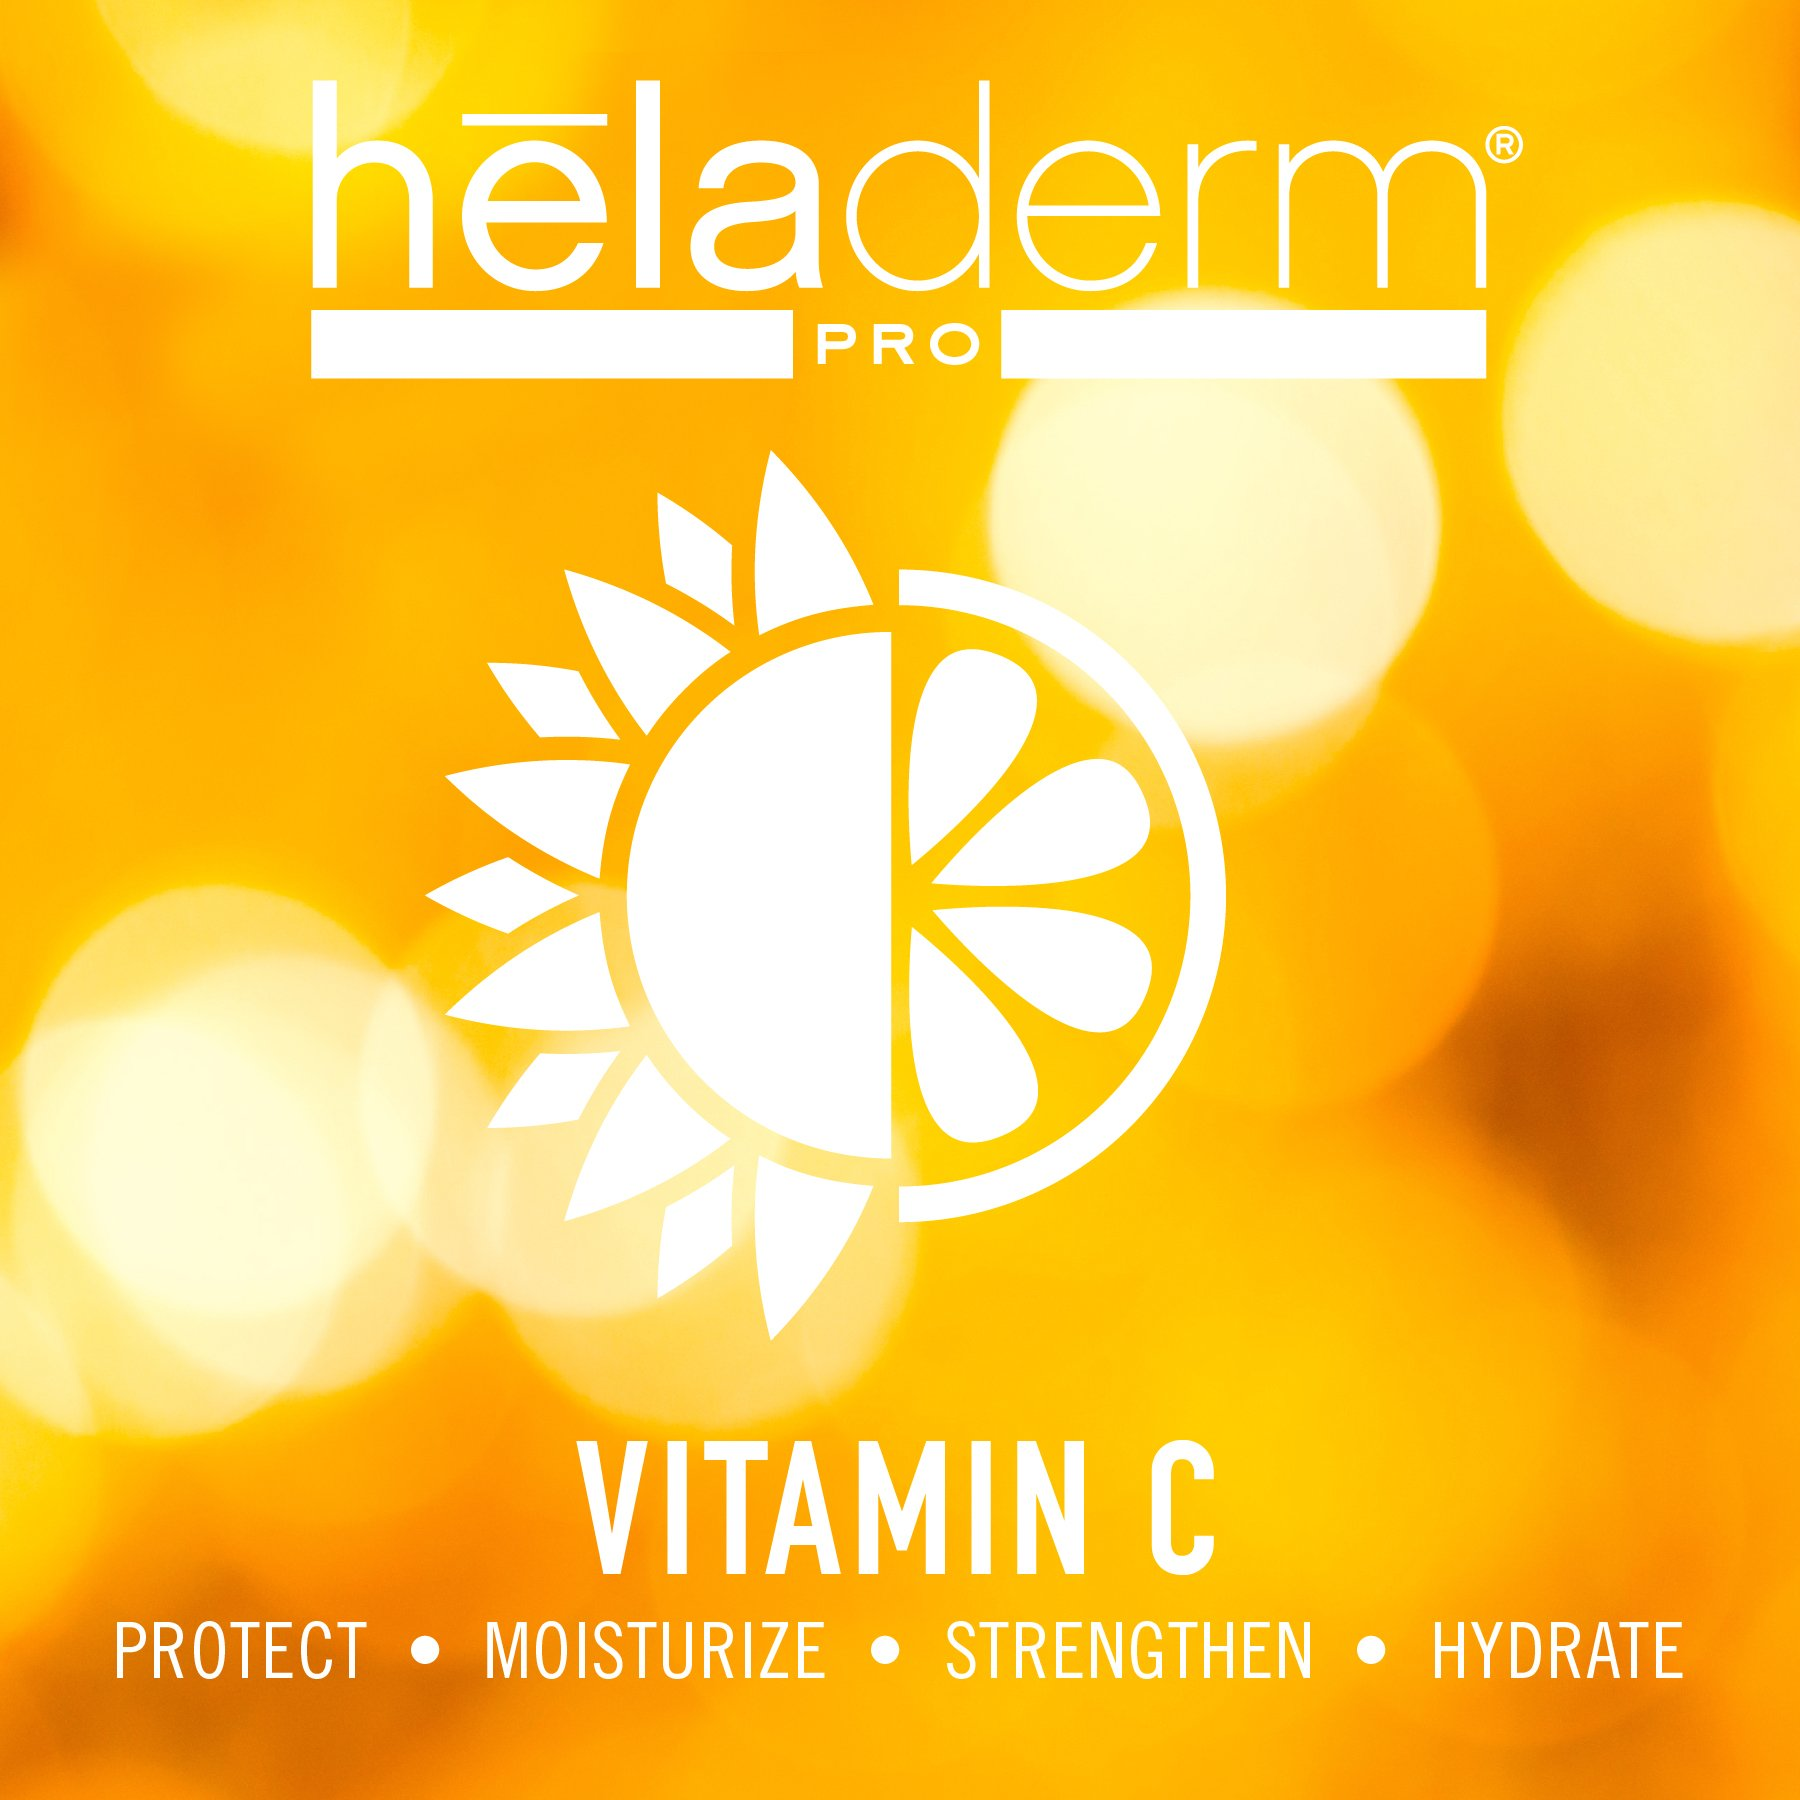 Vitamin C Serum for face with Advanced Hyaluronic Acid, Vitamin E, and Aloe. Natural Anti-Aging Anti-Wrinkle Facial Serum, Restore & Boost Collagen, Moisturizer, Organic, Heladerm 1 fl. Oz